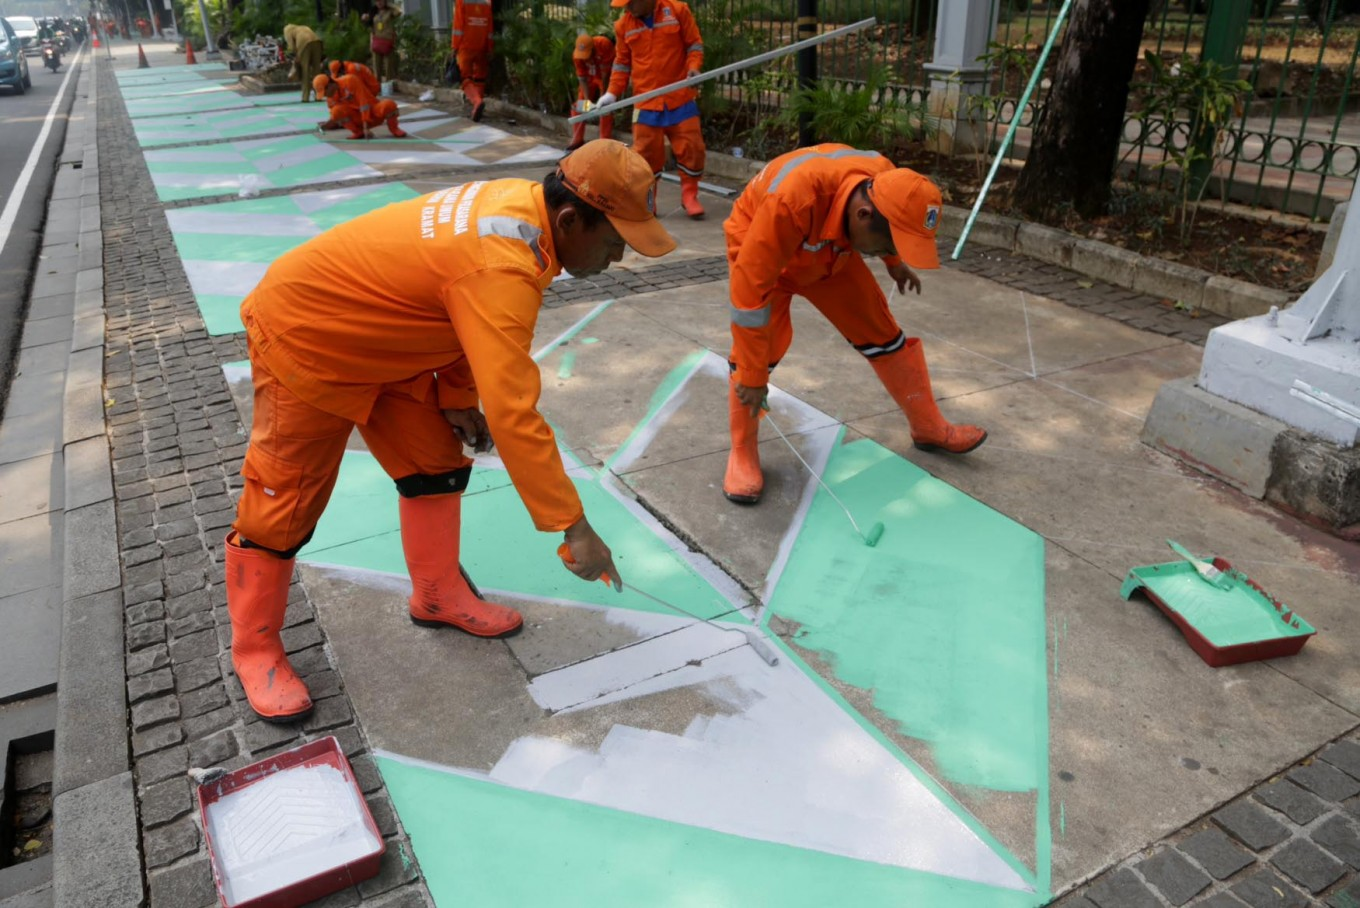 Jakarta sets aside Rp 474 billion to build, revamp sidewalks